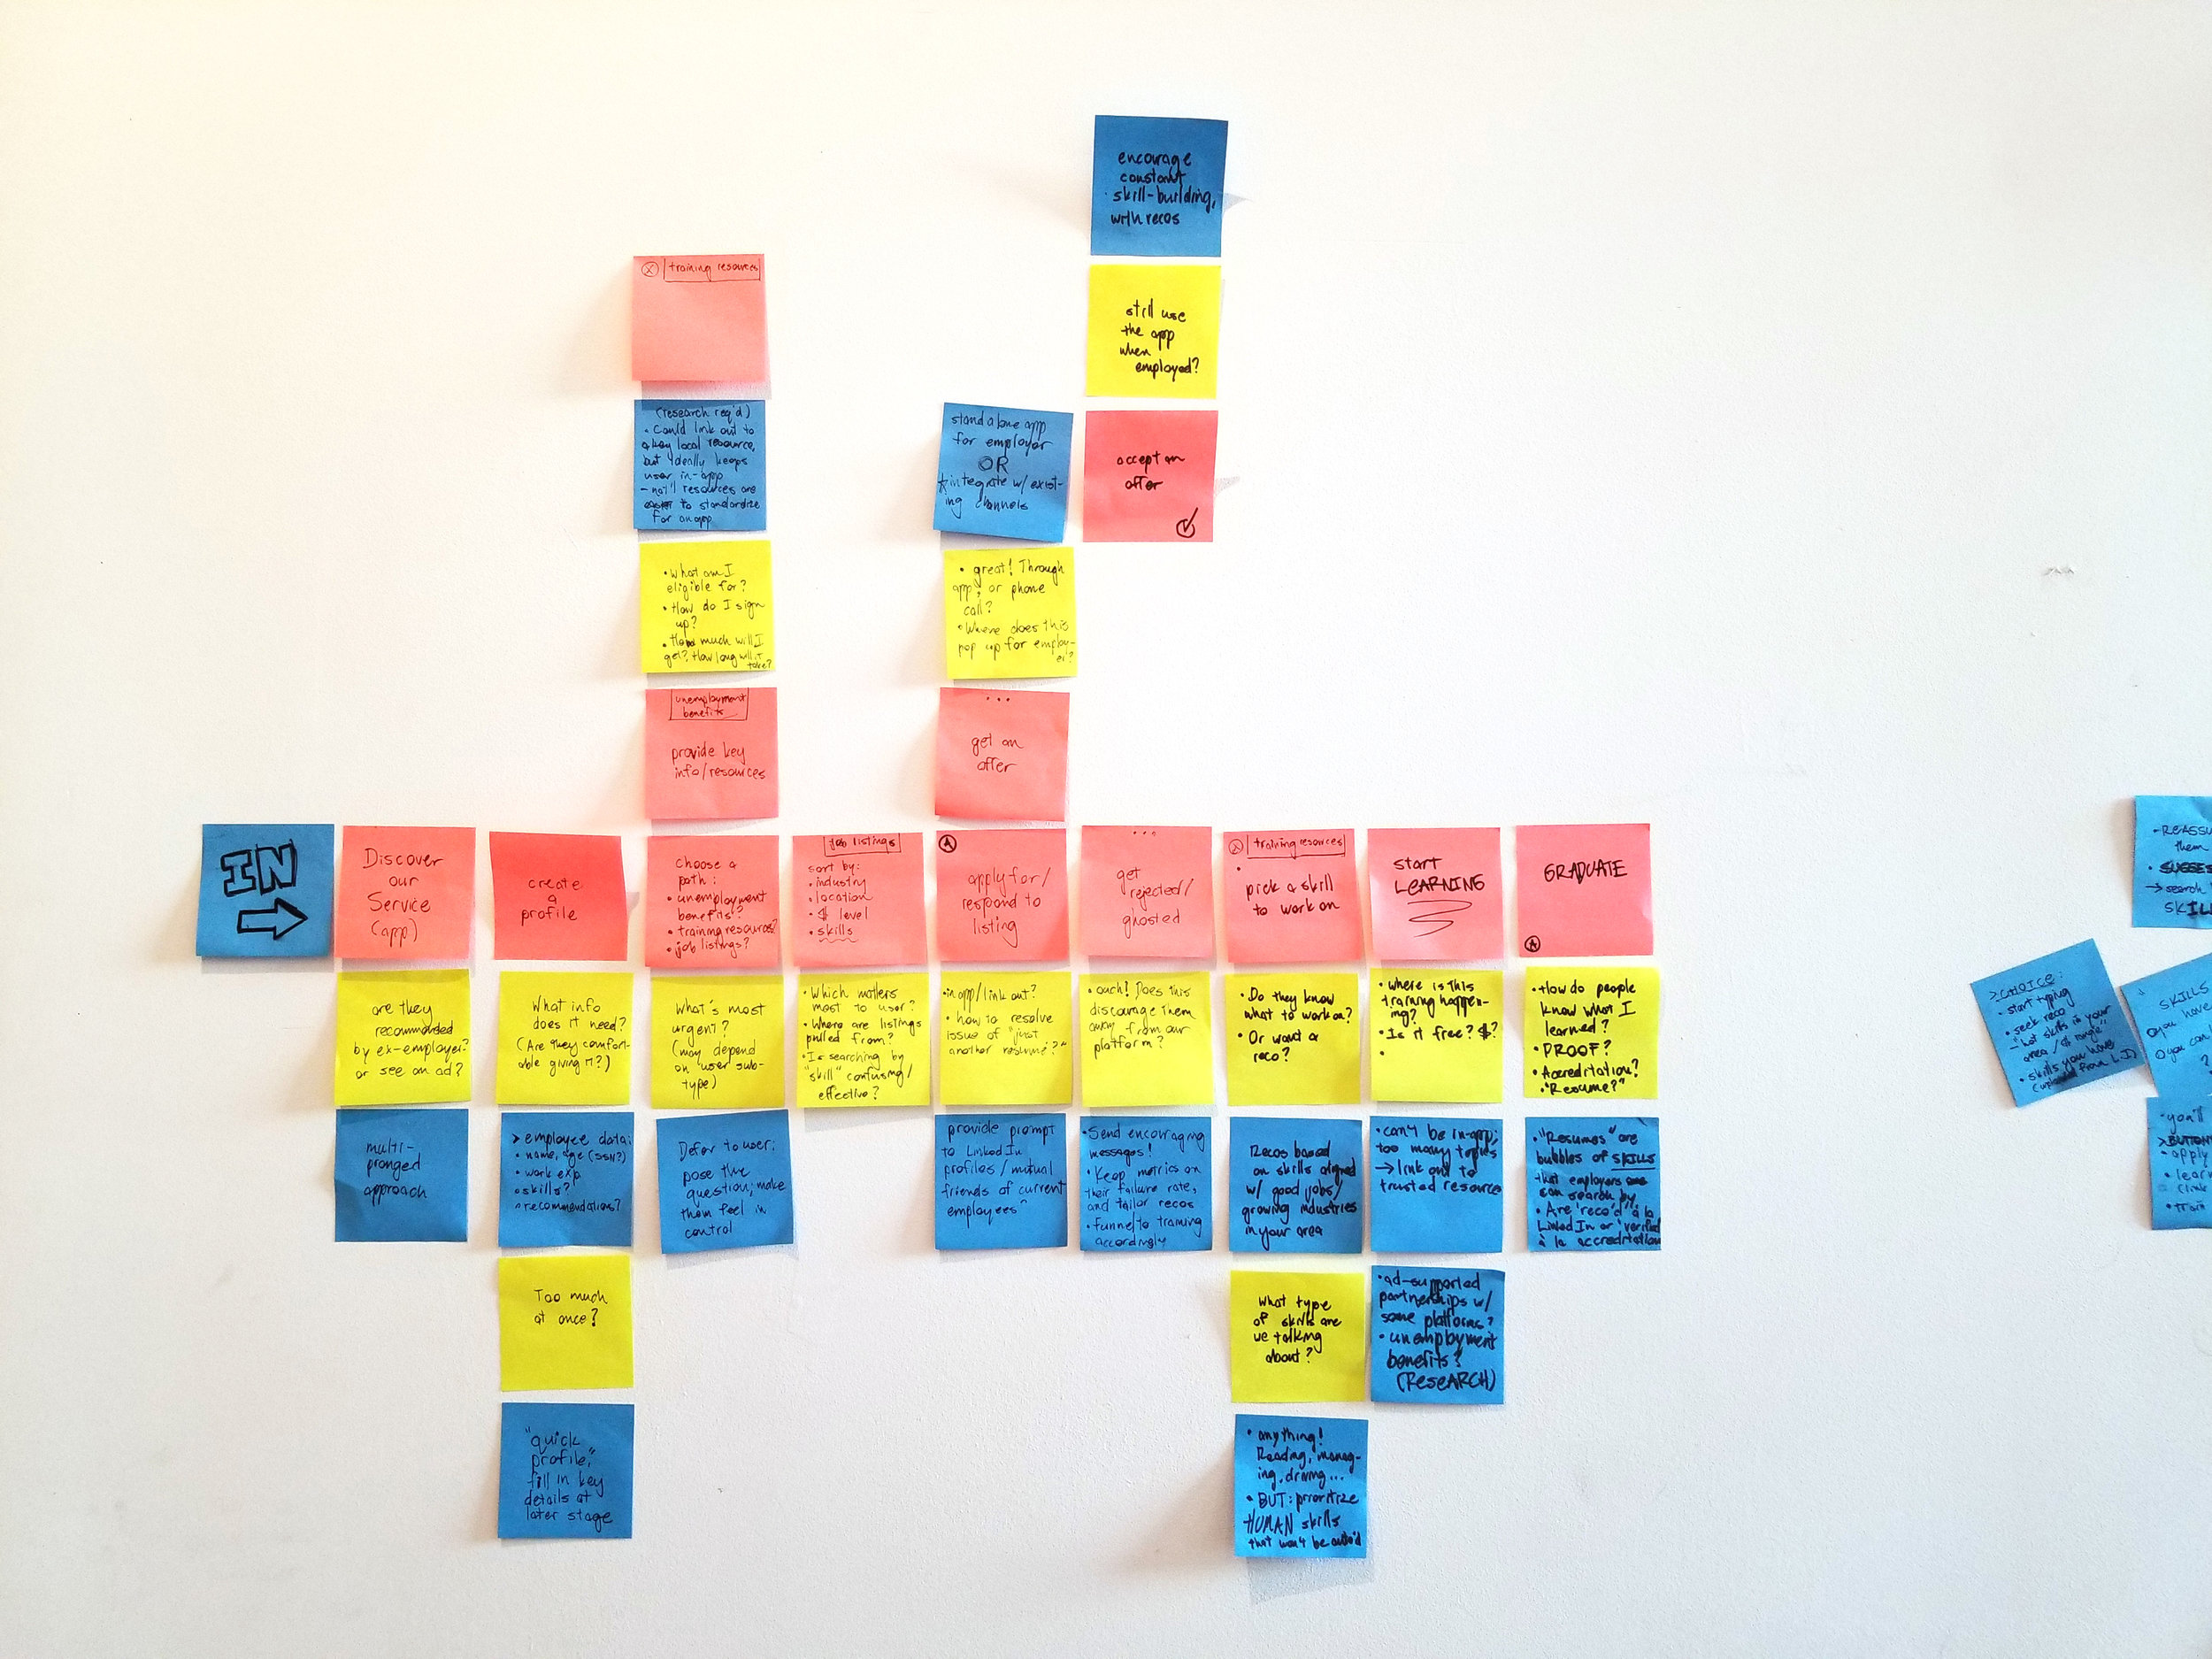 One of my second-phase scenario maps. Pink denotes a user interaction, green represents a potential issue or question that might arise at this juncture, and blue post-its are possible features or solutions.